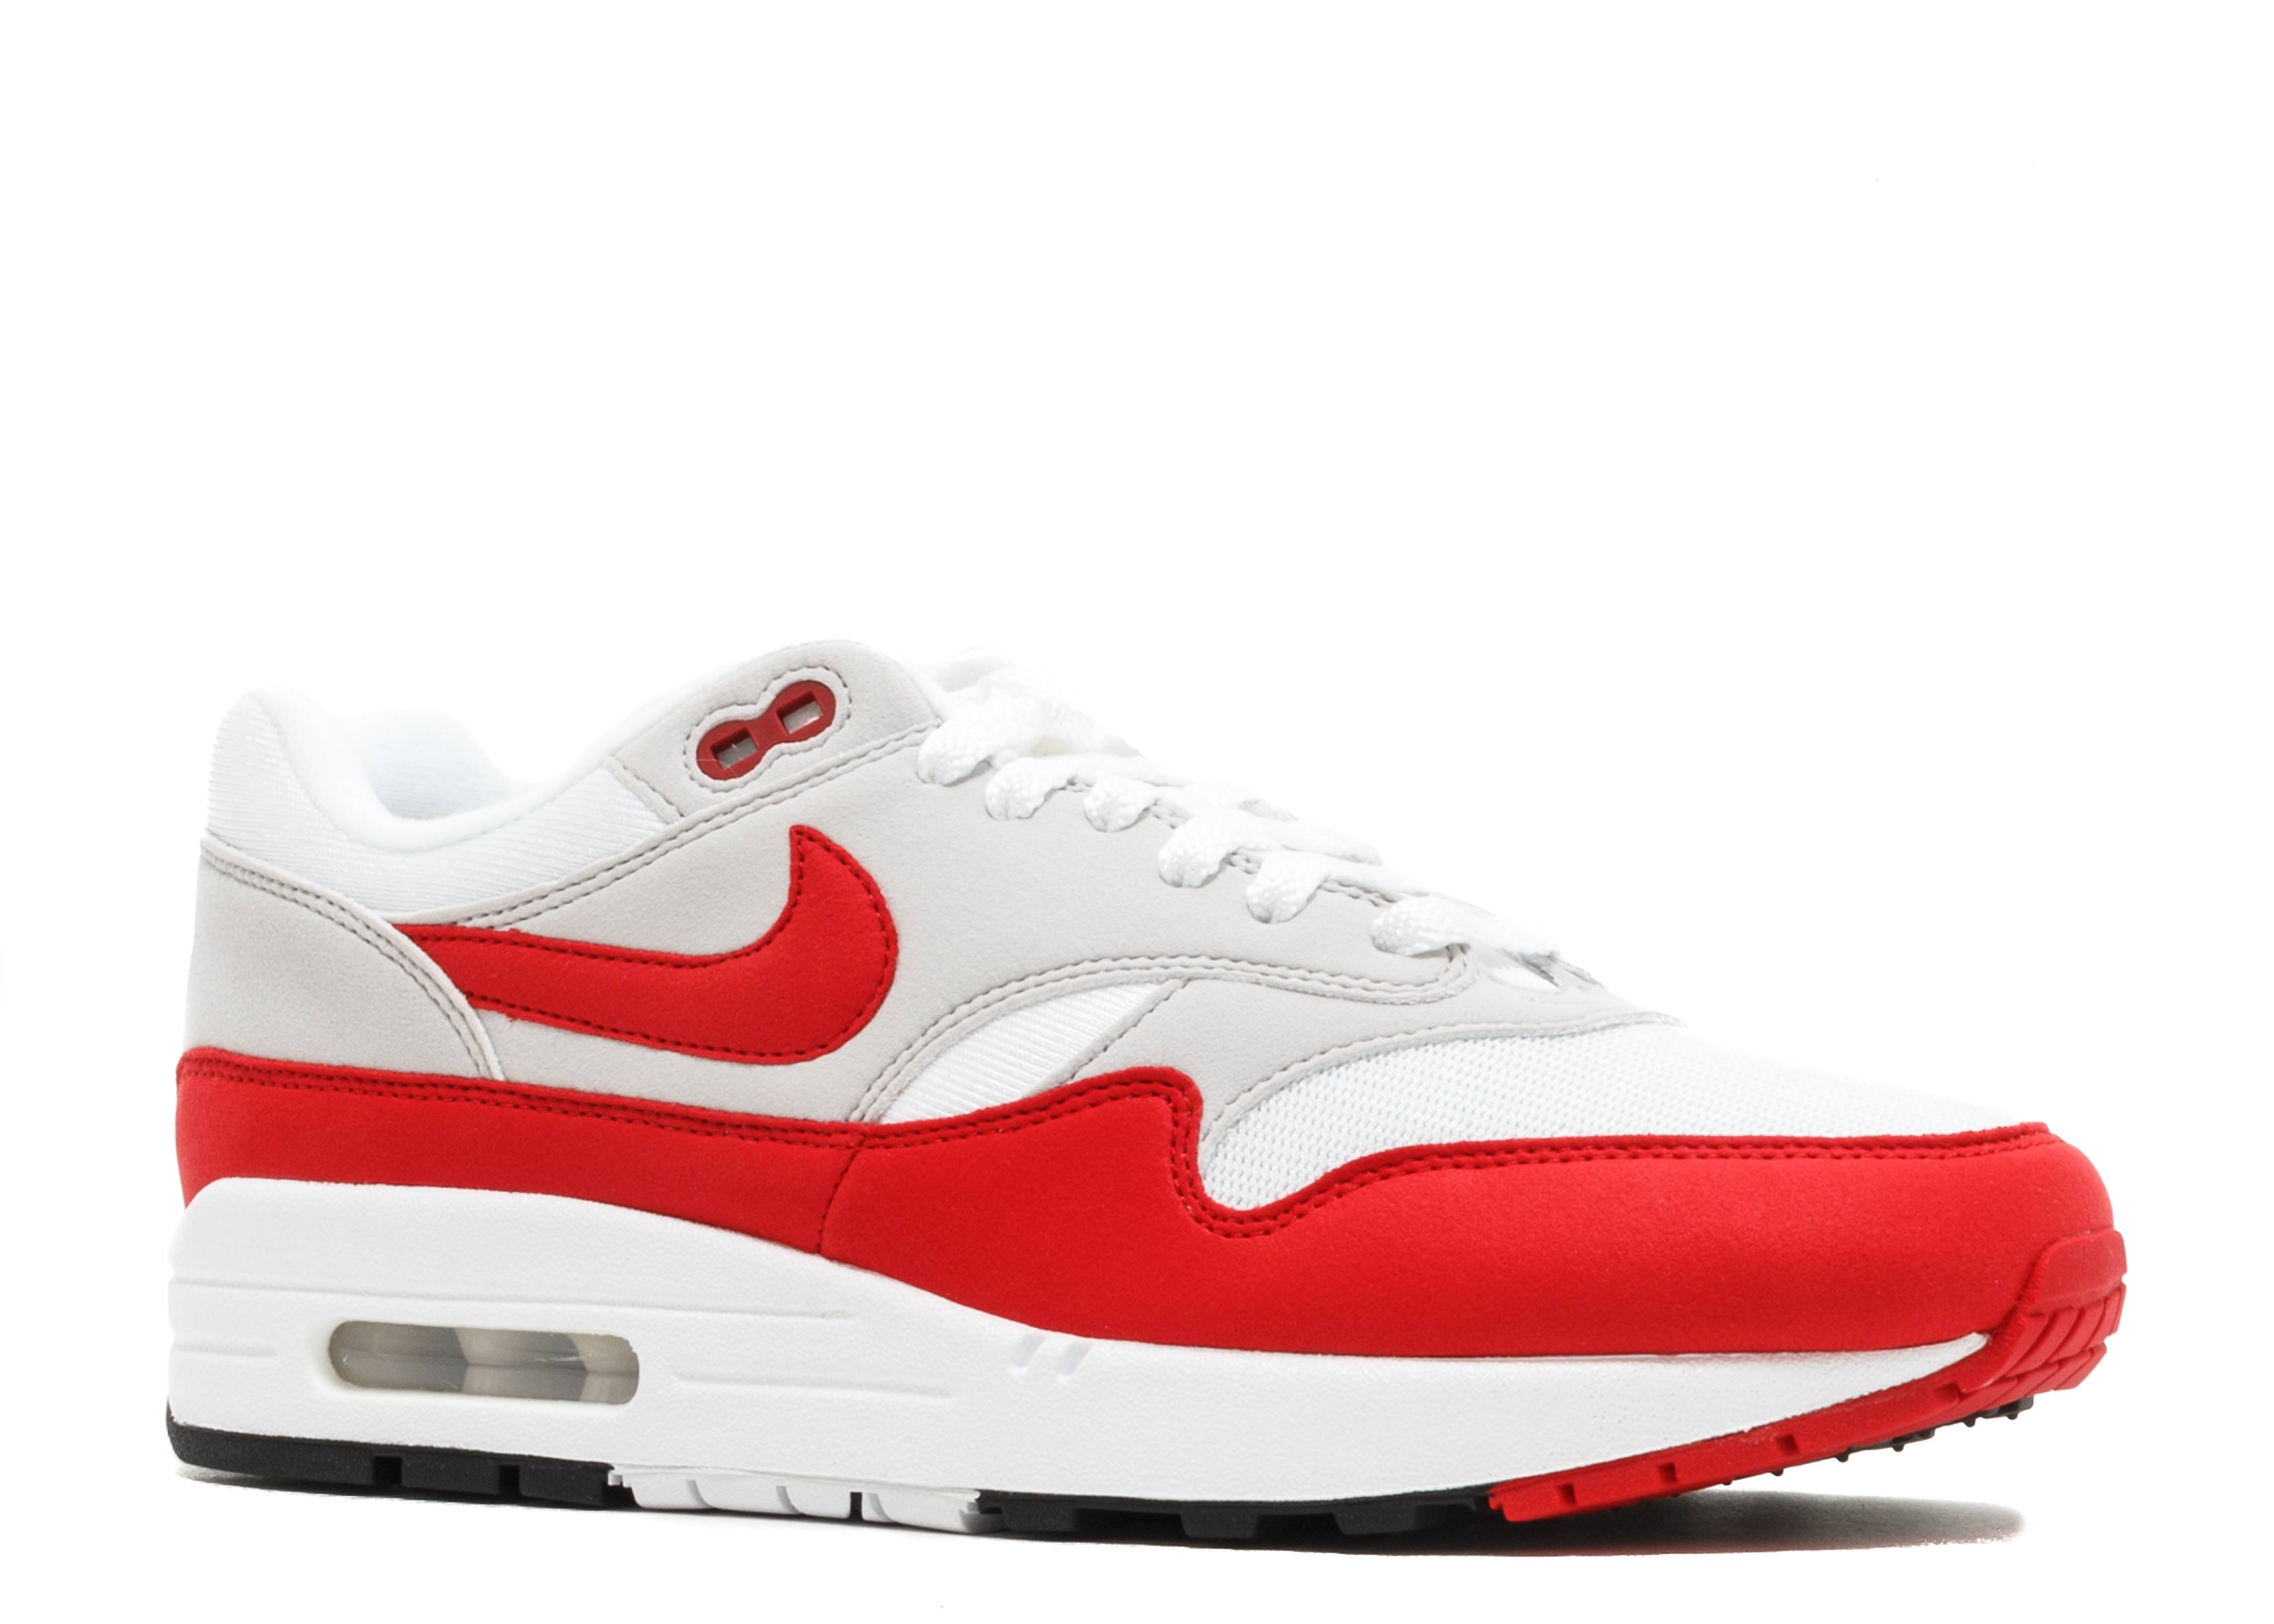 reputable site 0289f 43a6c Nike Air Max 1 Anniversary - Nike - 908375 103 - white university red    Flight Club